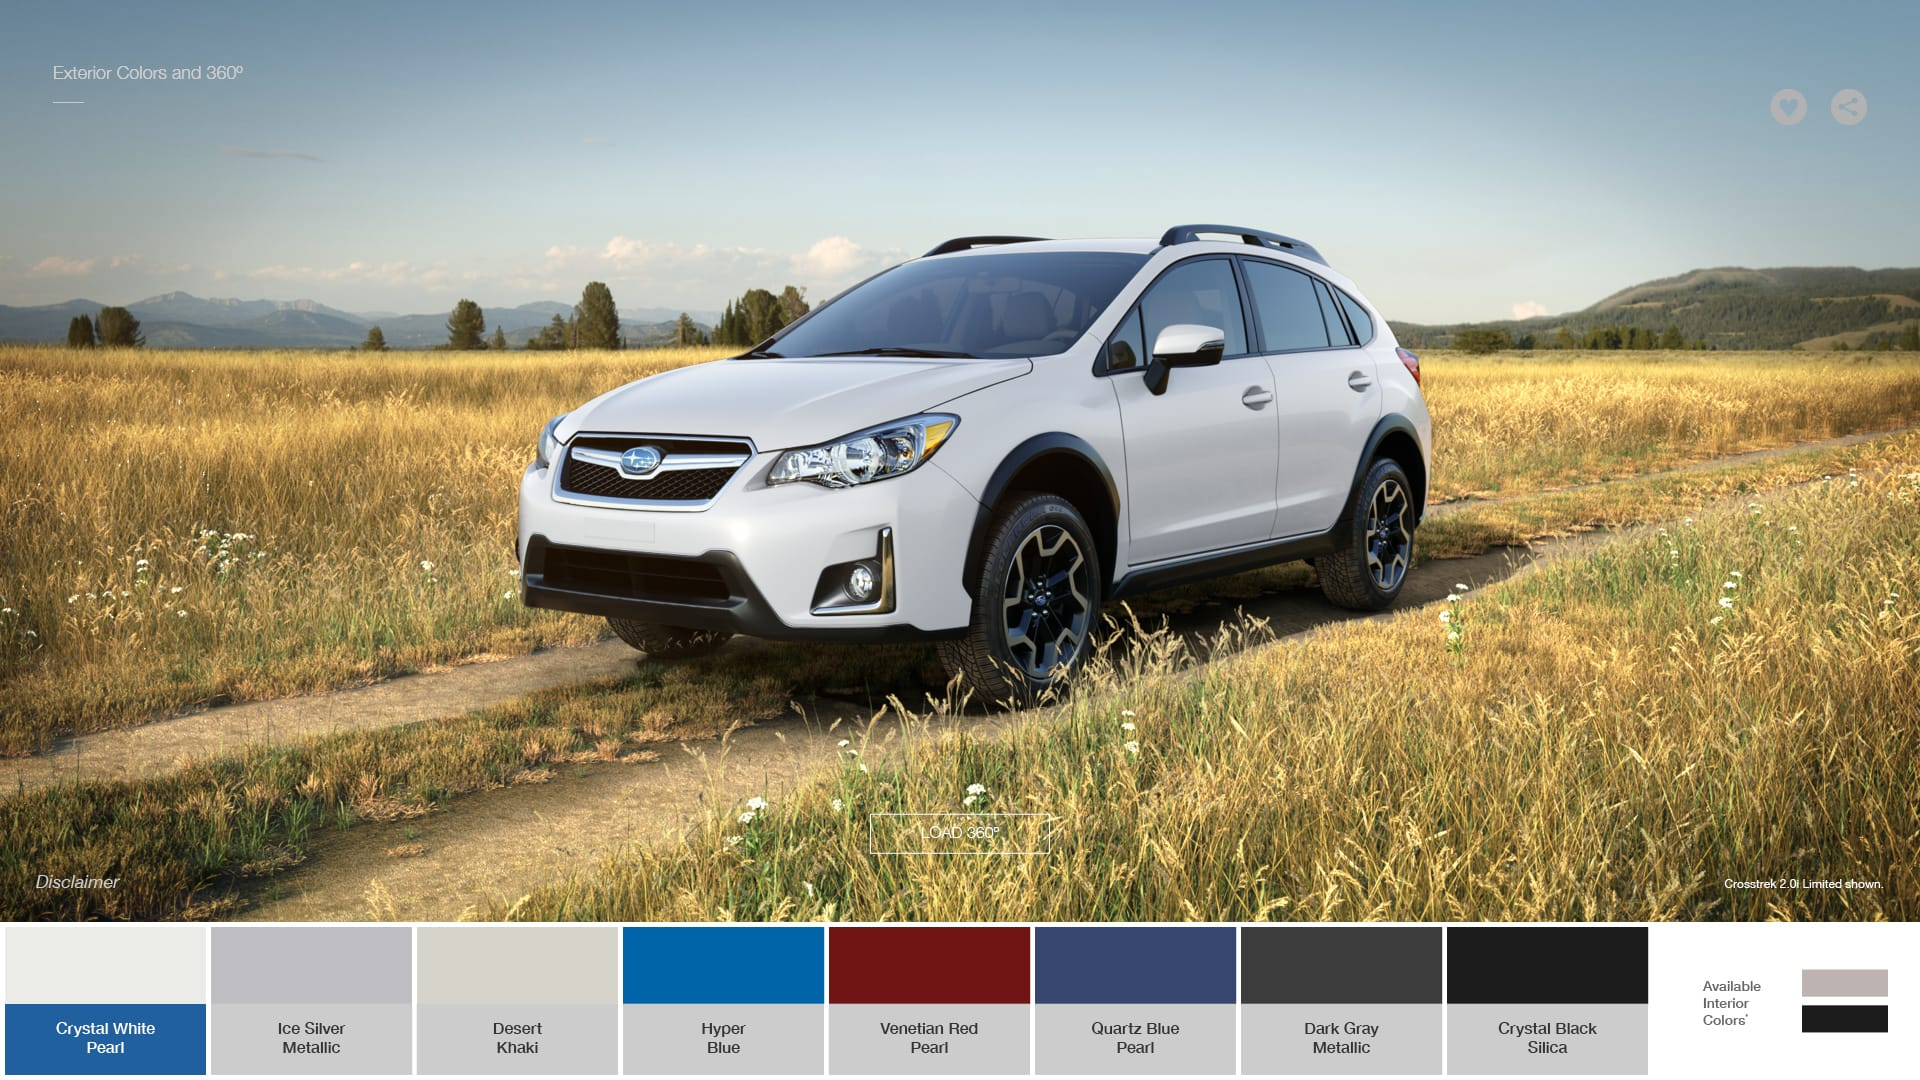 Build Your Own Subaru >> Subaru Crosstrek Colors | 2017 Subaru Crosstrek Color Options